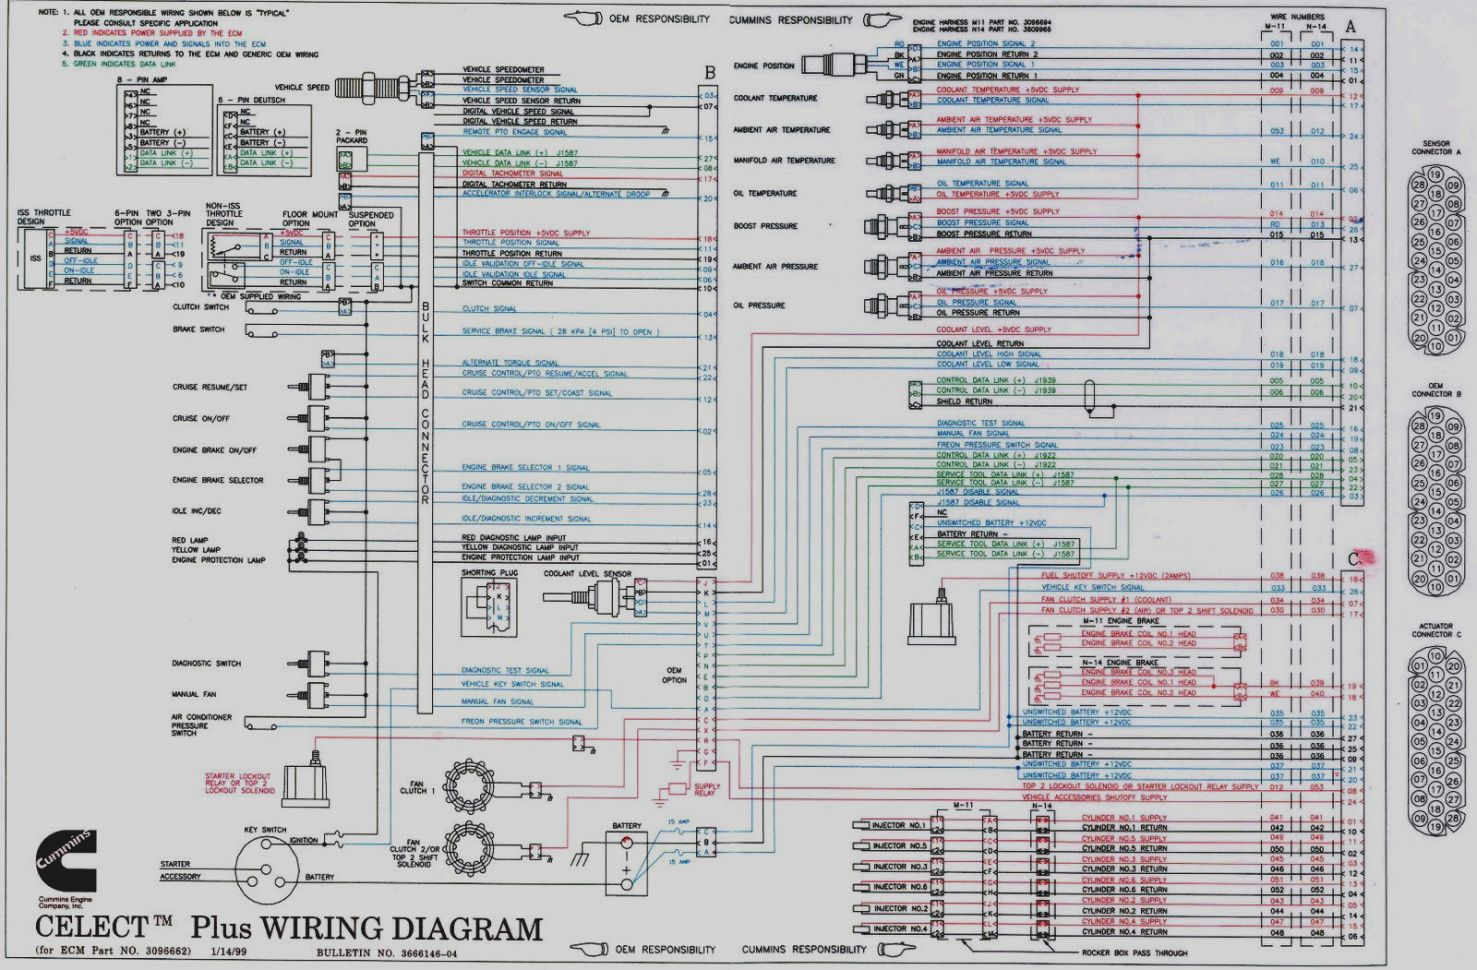 small resolution of awesome cummins n14 celect plus wiring diagram freightliner columbiaawesome cummins n14 celect plus wiring diagram freightliner